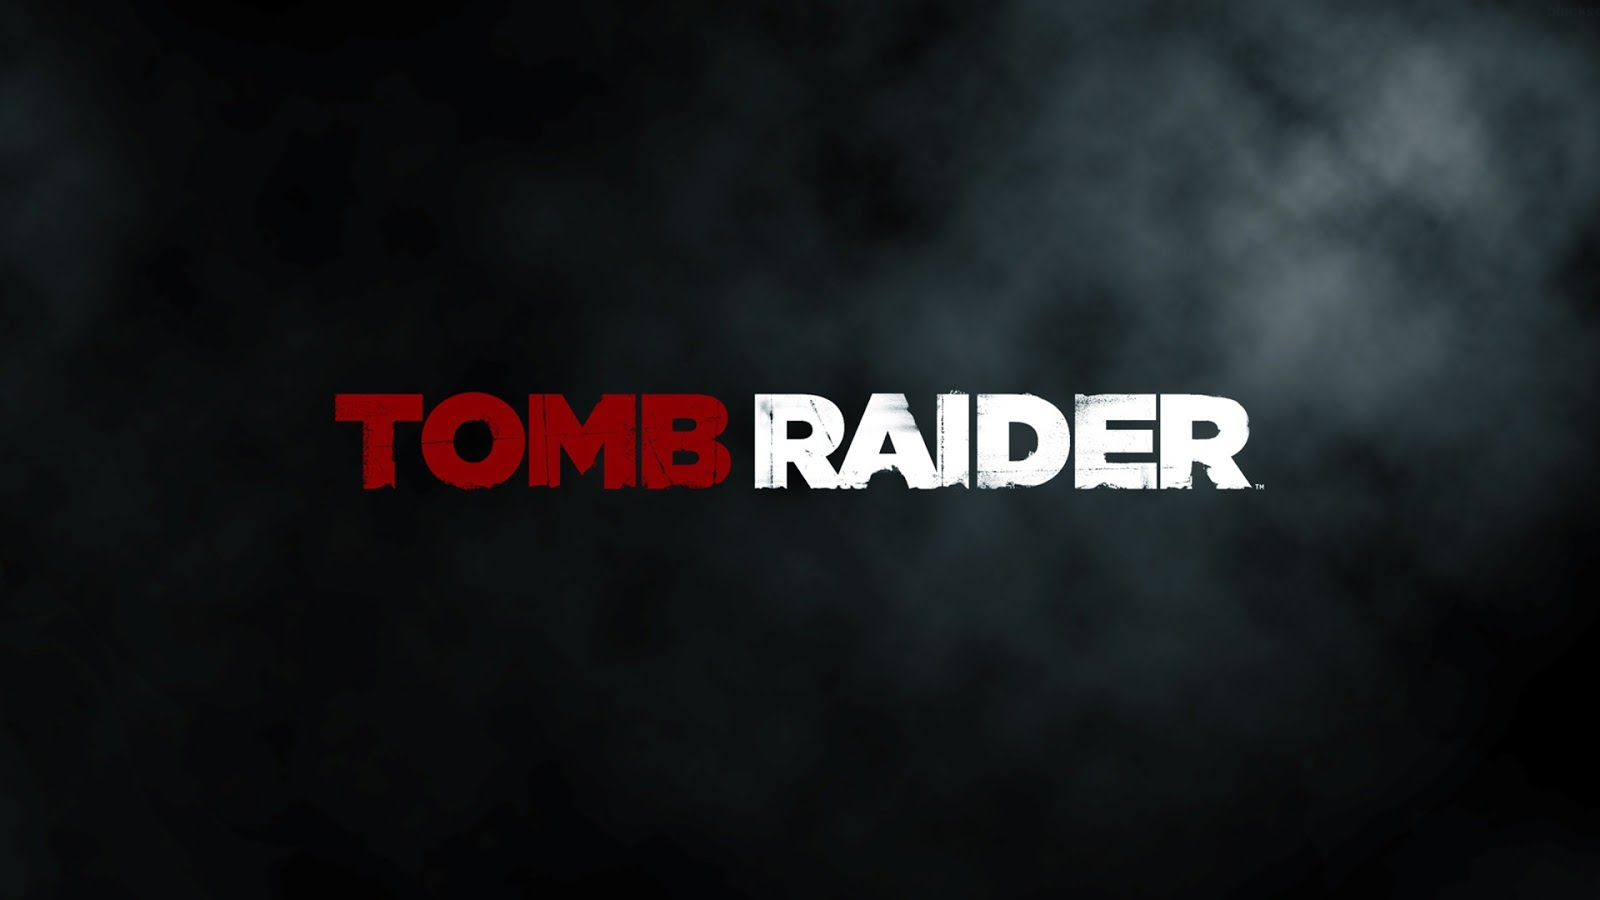 Tomb Raider HD & Widescreen Wallpaper 0.687004156745292